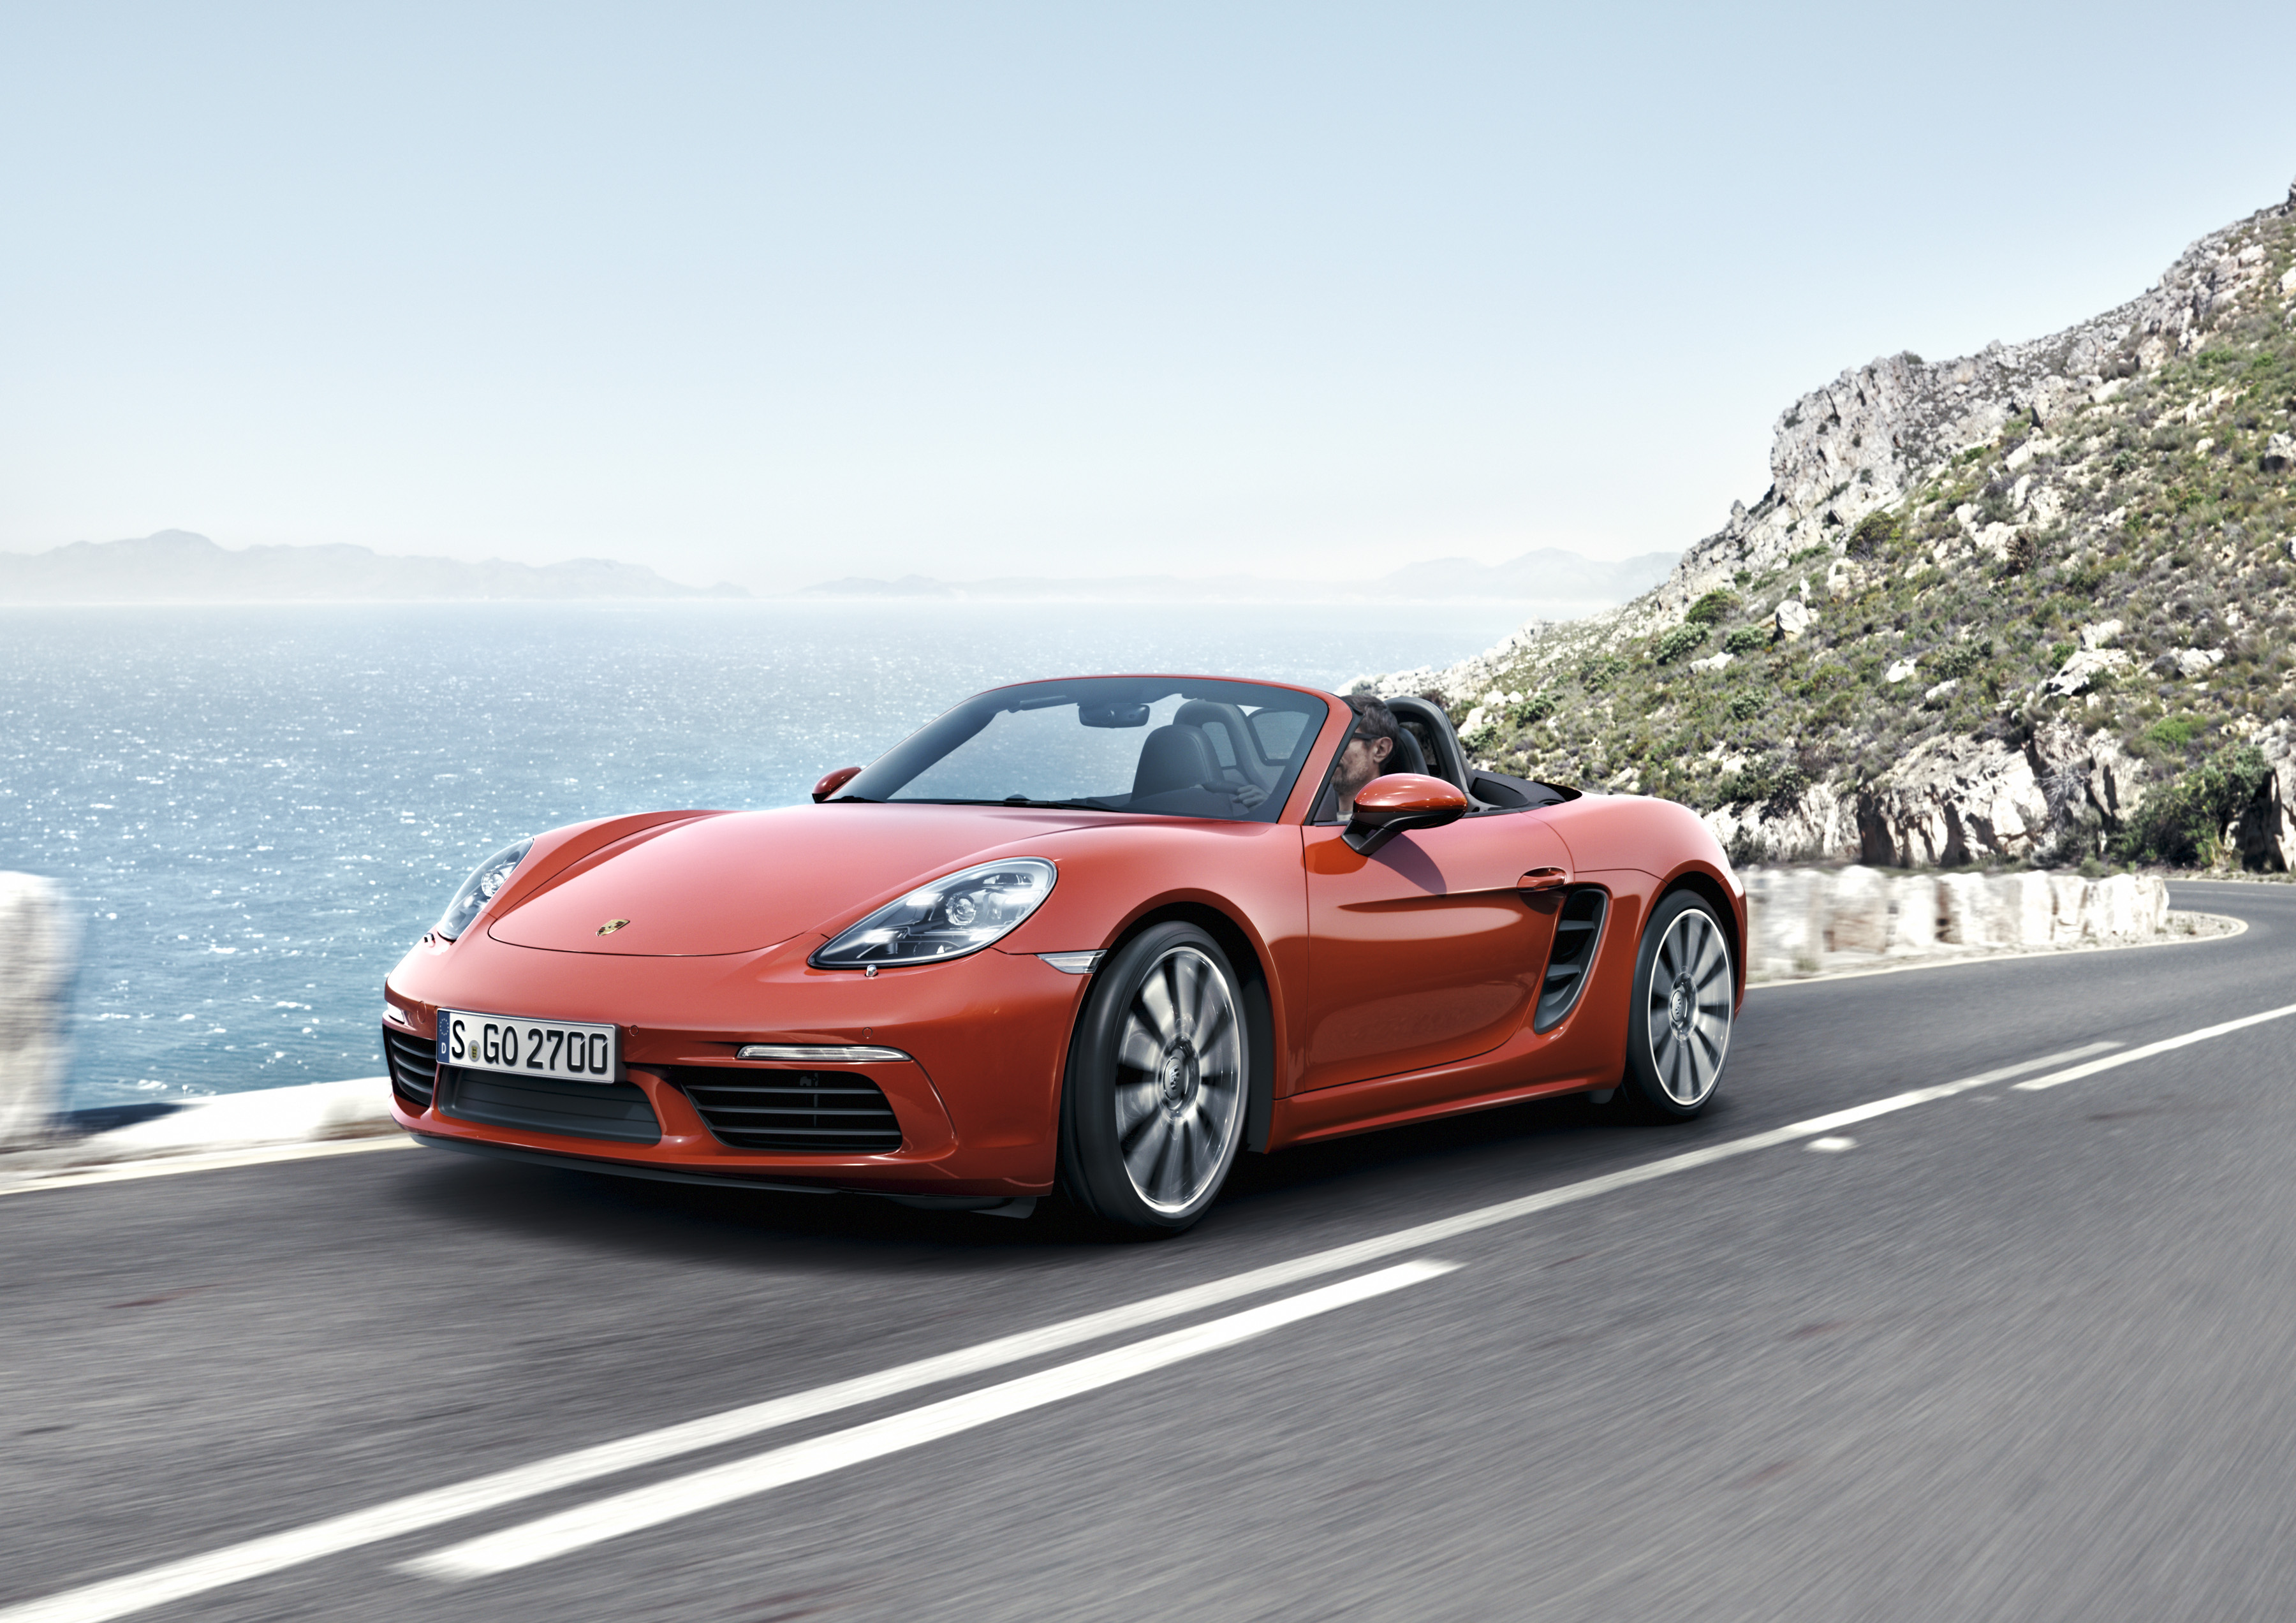 The Top 5 Things You Need To Know About the Porsche 718 Boxster